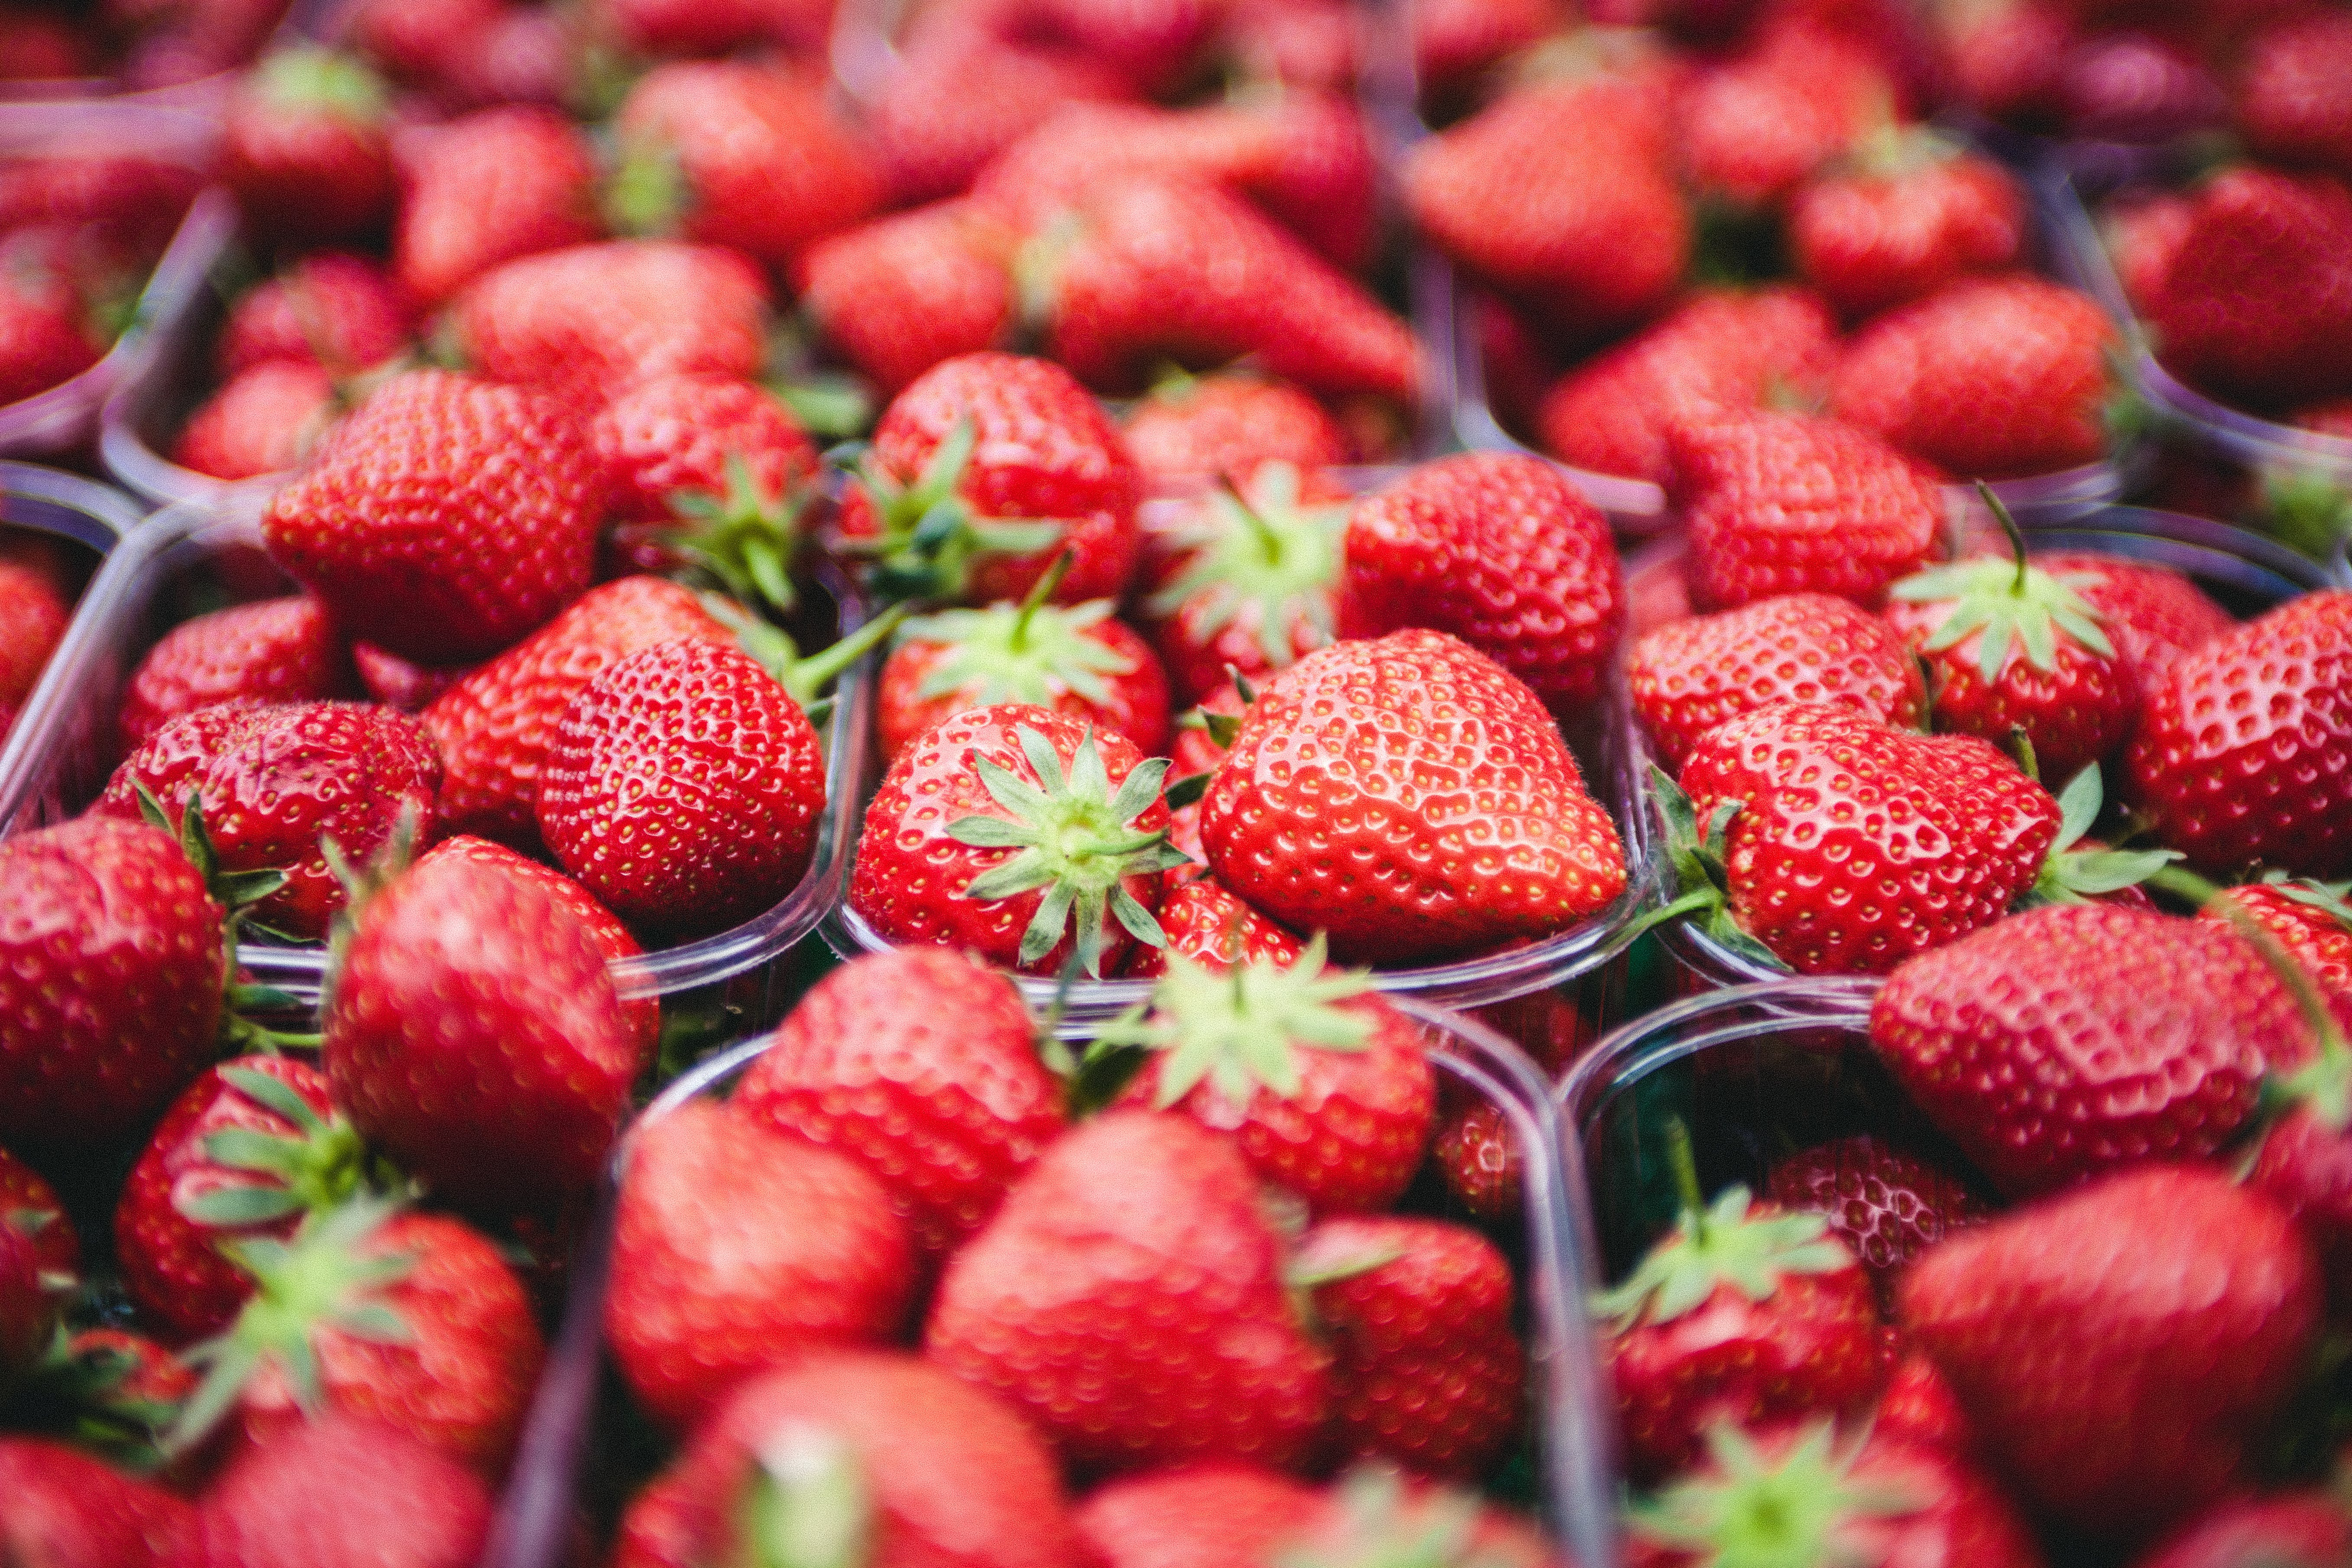 Strawberries on Clear Plastic Containers